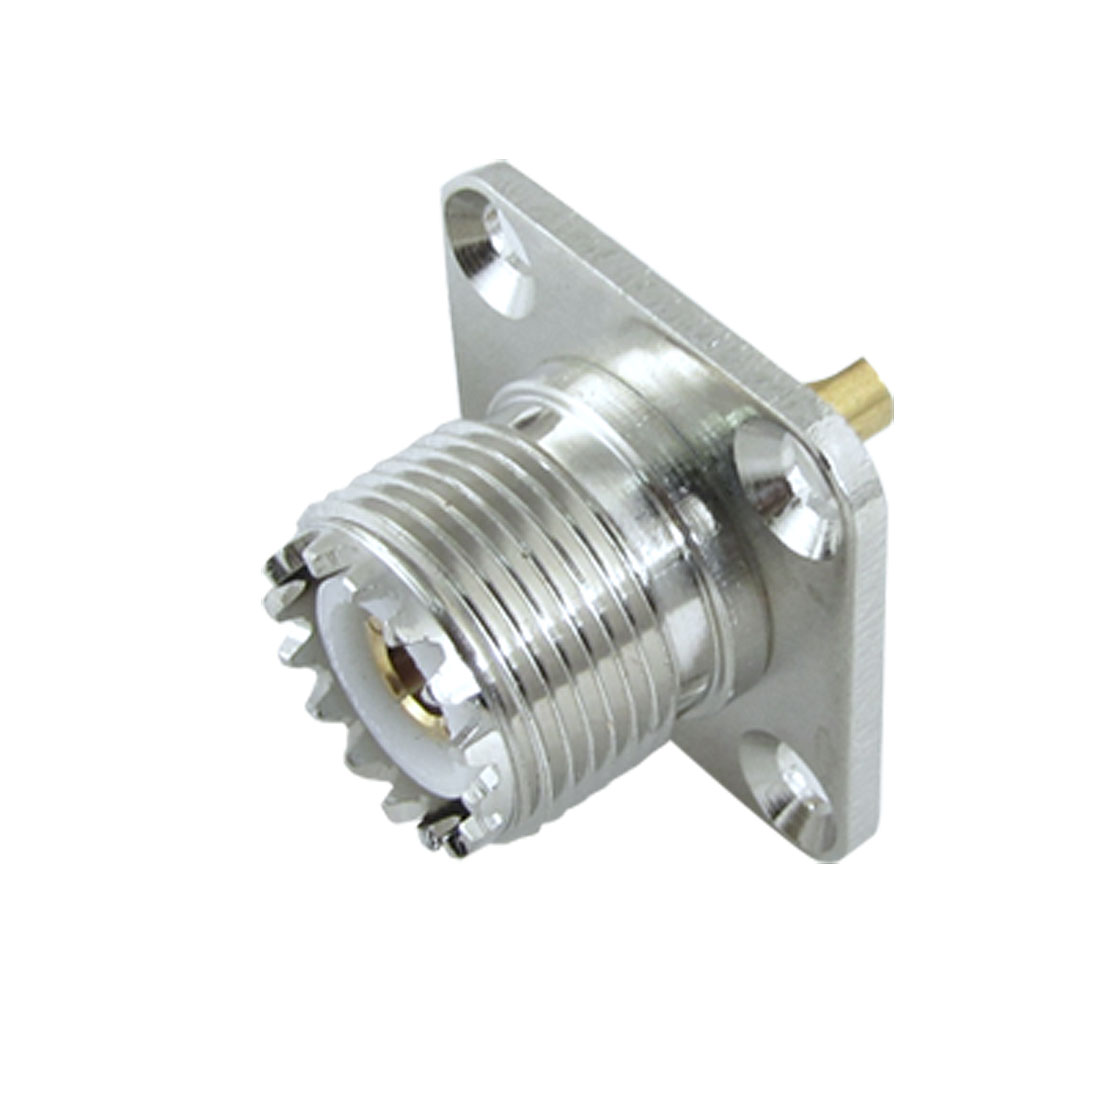 UHF Female Jack SO-239 Panel Chassis Mount Solder Cup RF Coaxial Connector